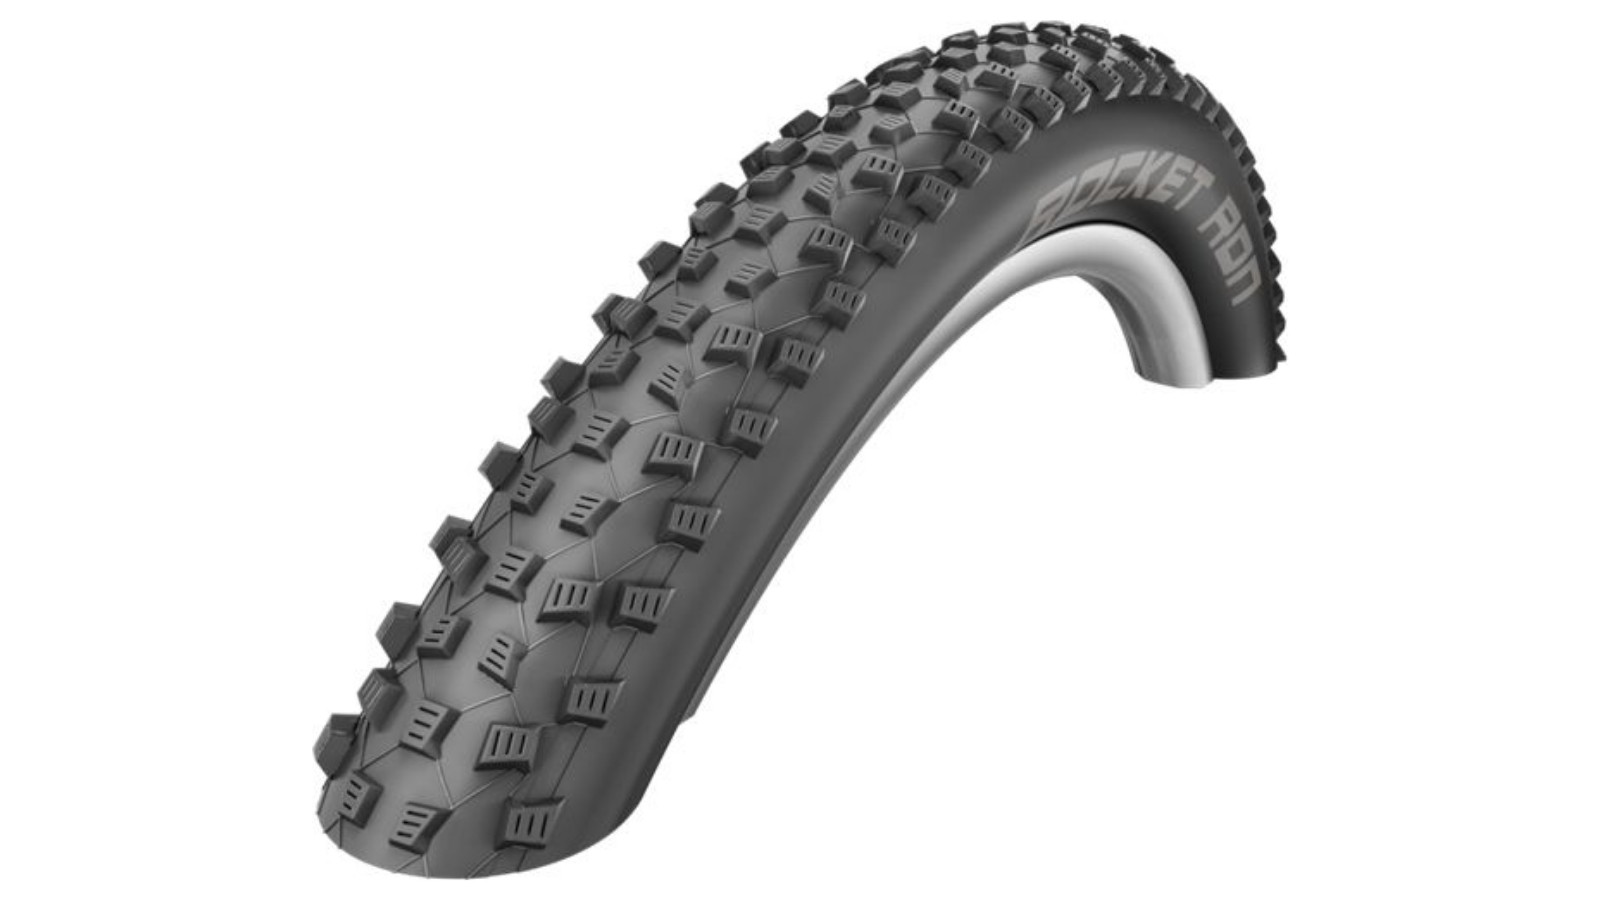 The Schwalbe Rocket Ron is great for racing on dry trails